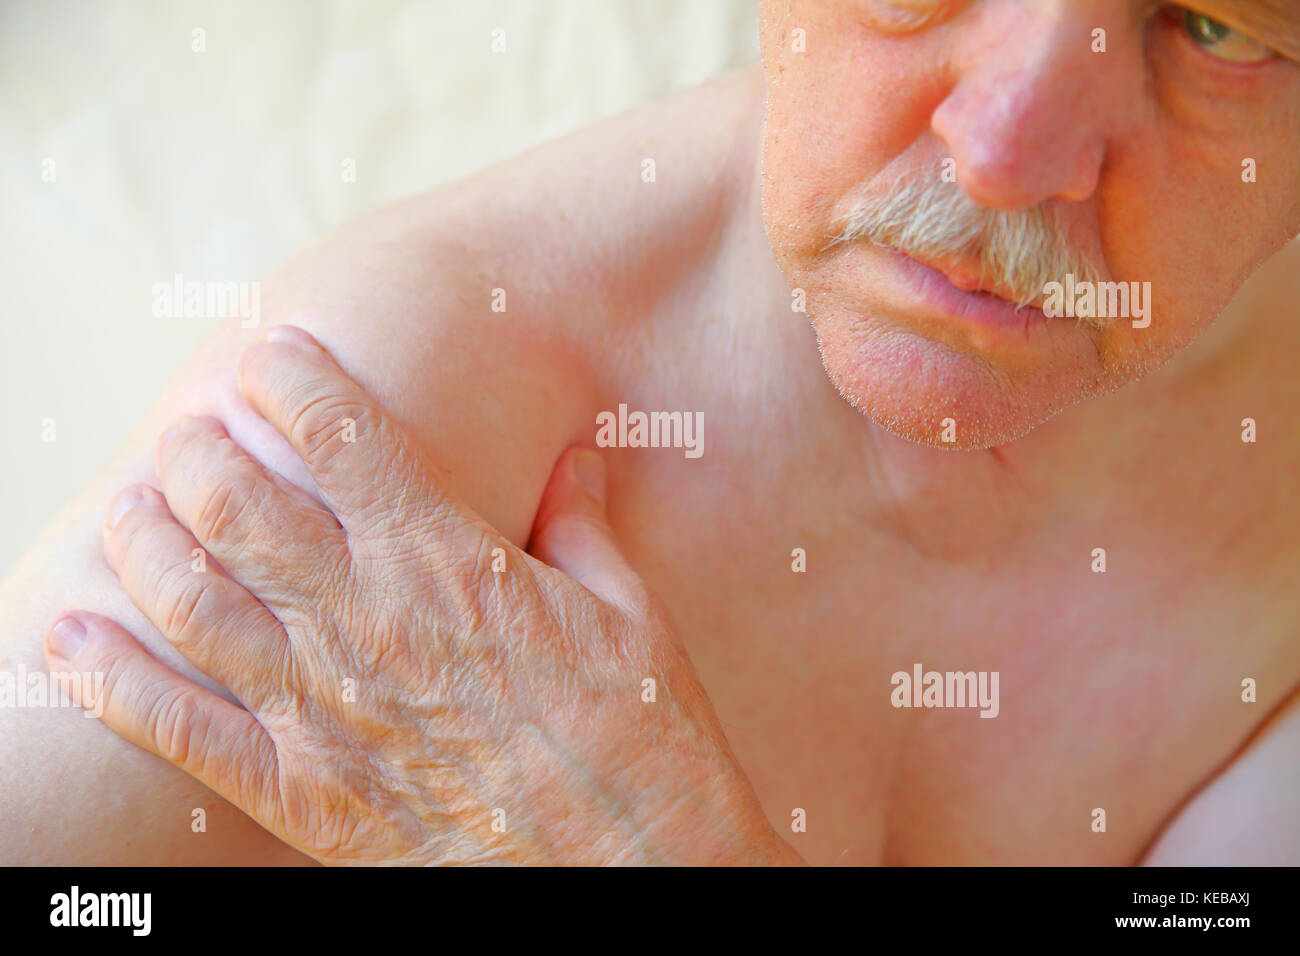 An older man with a hand on an aching shoulder joint - Stock Image